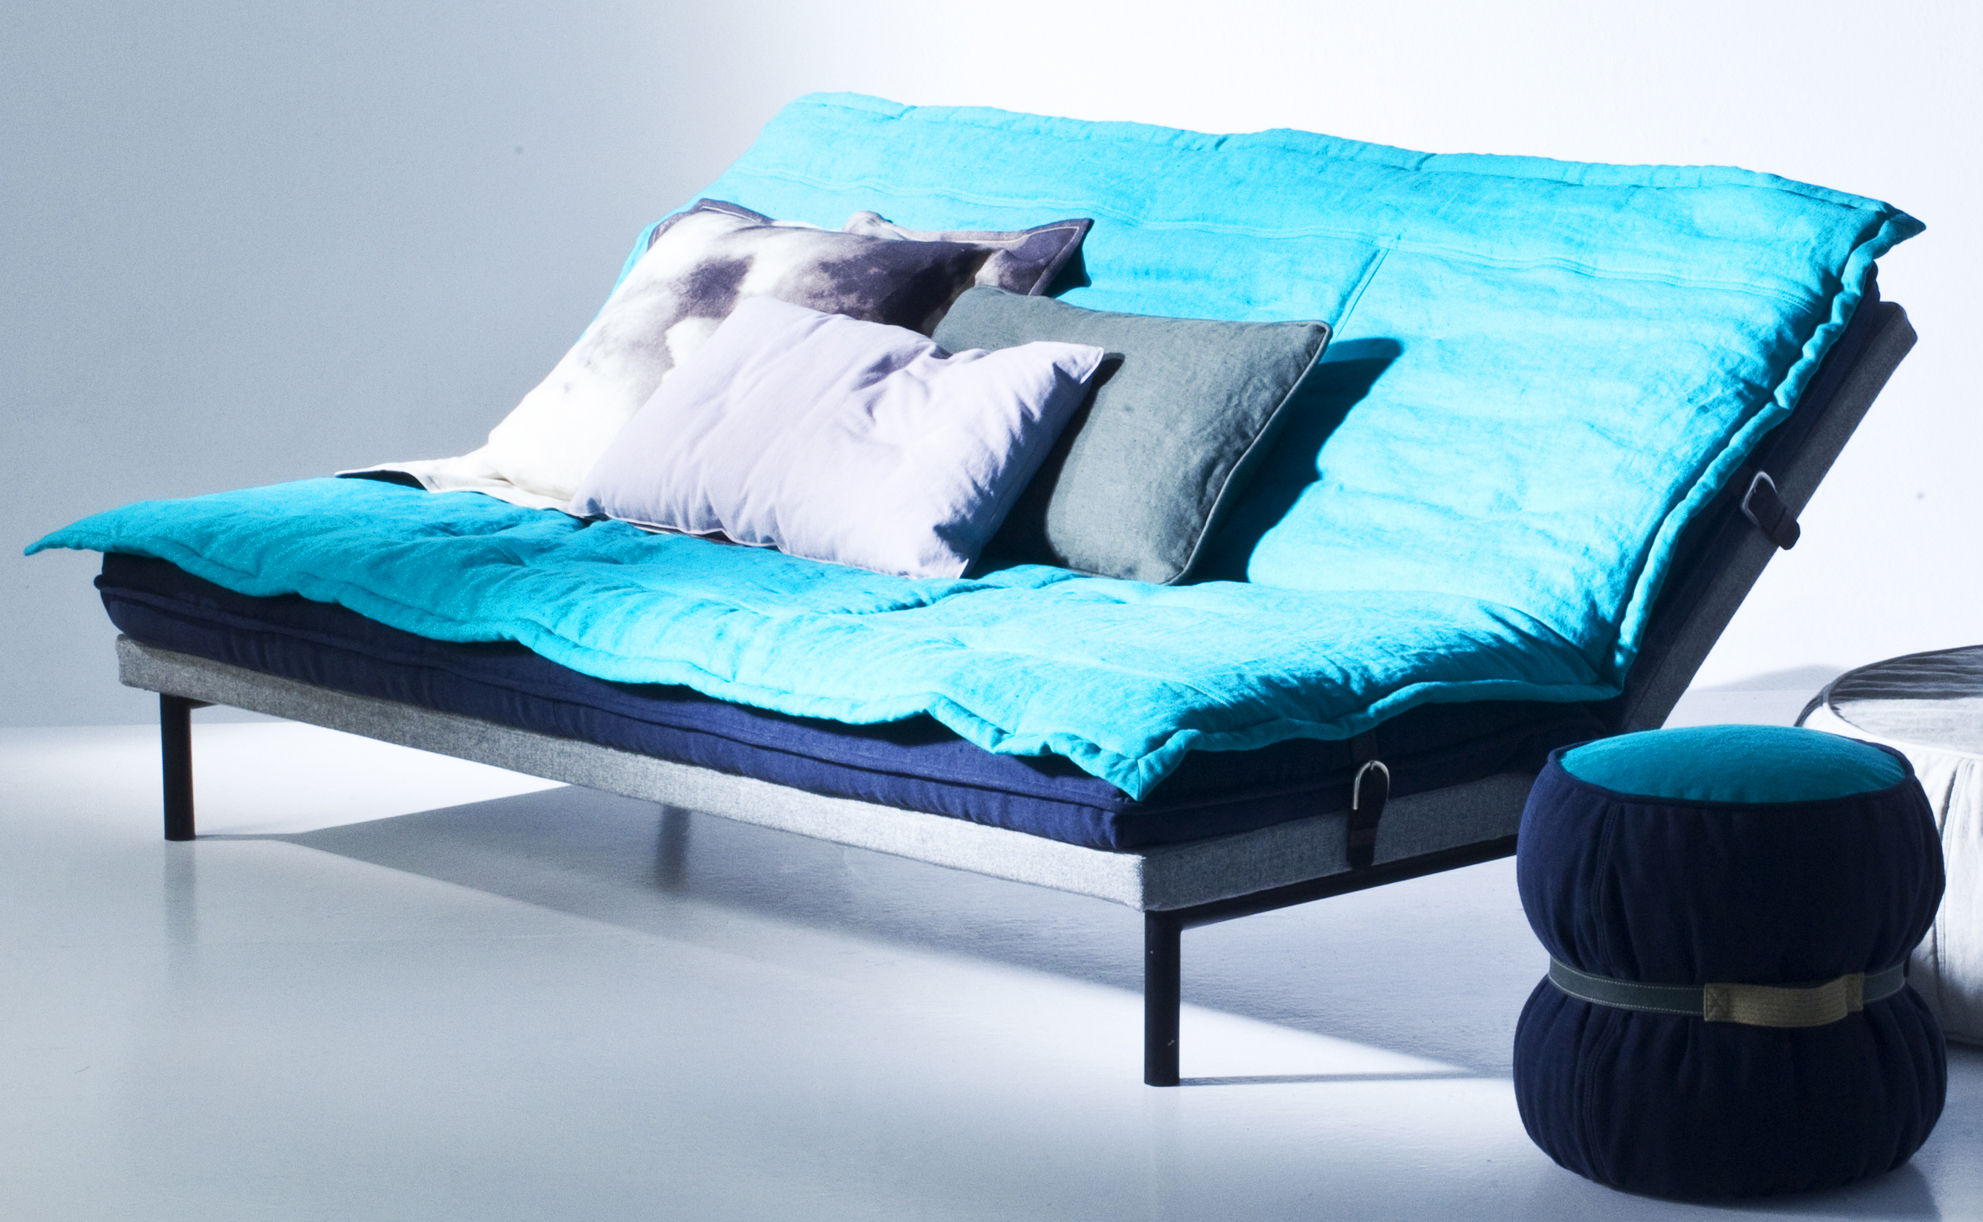 canap convertible chubby chic l 200 cm couette turquoise sommier gris pieds laqu s noirs. Black Bedroom Furniture Sets. Home Design Ideas